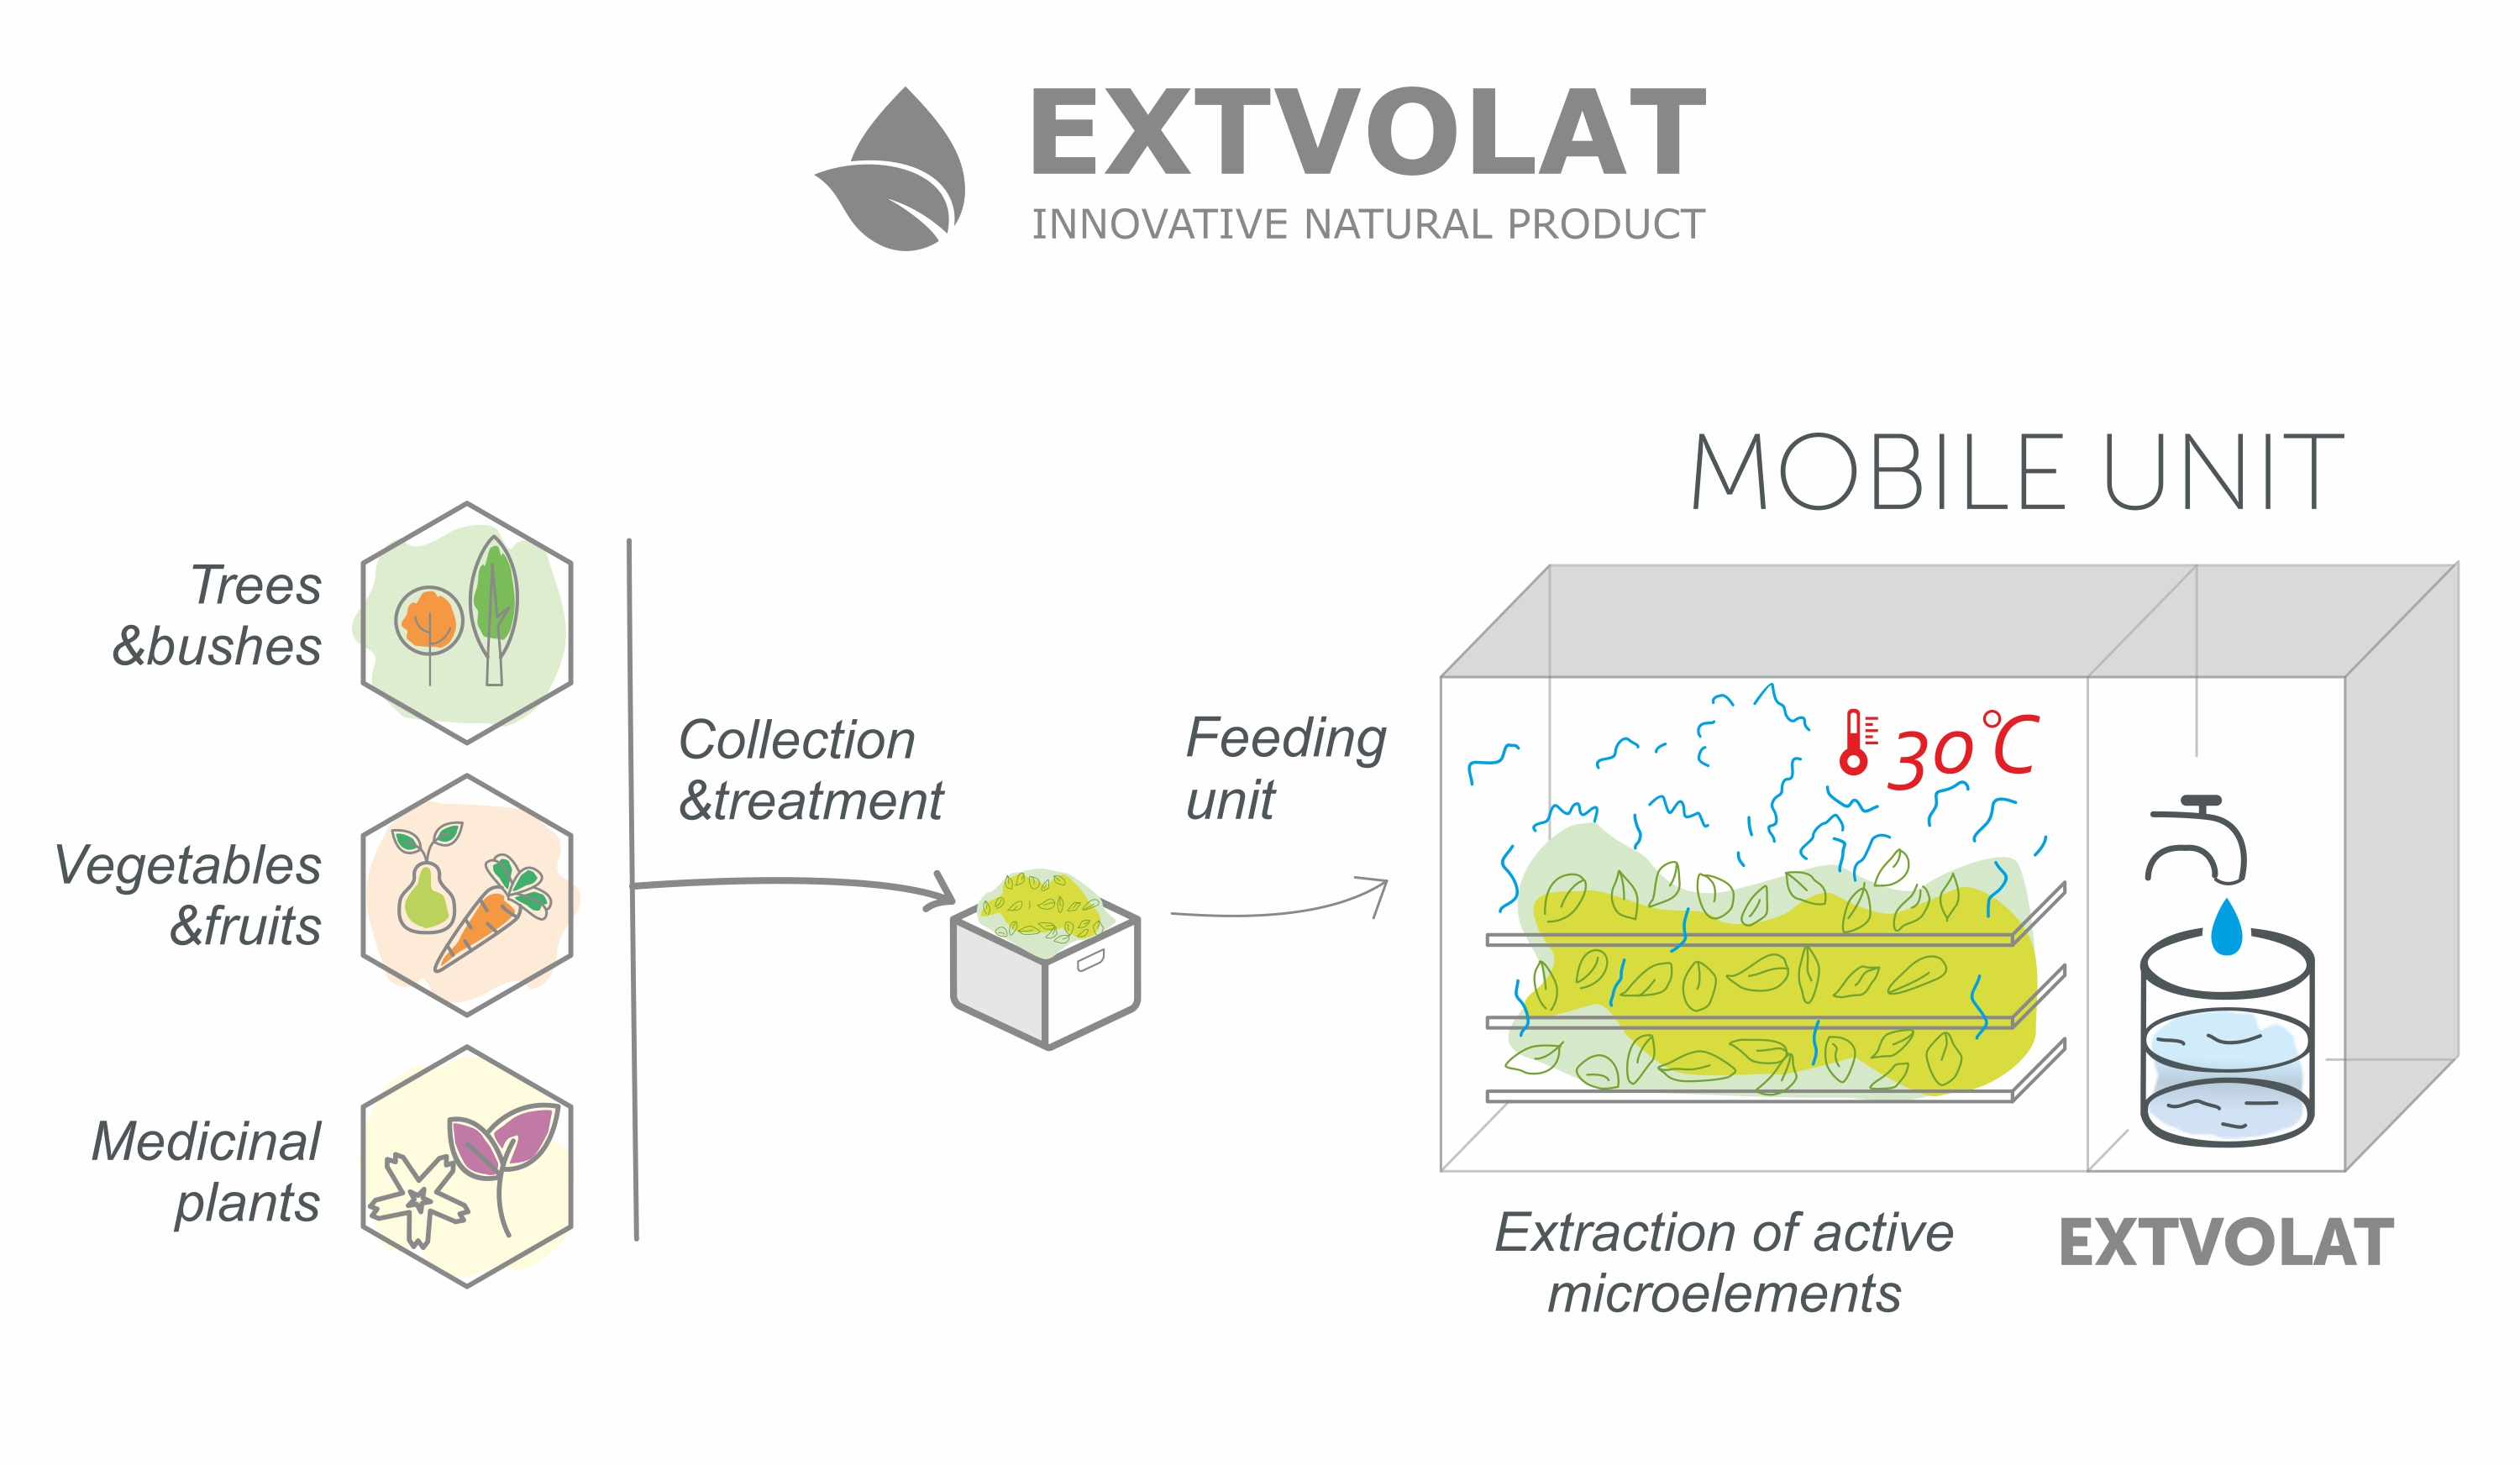 The scheme of obtaining Extvolat. Technology of Extvolat.